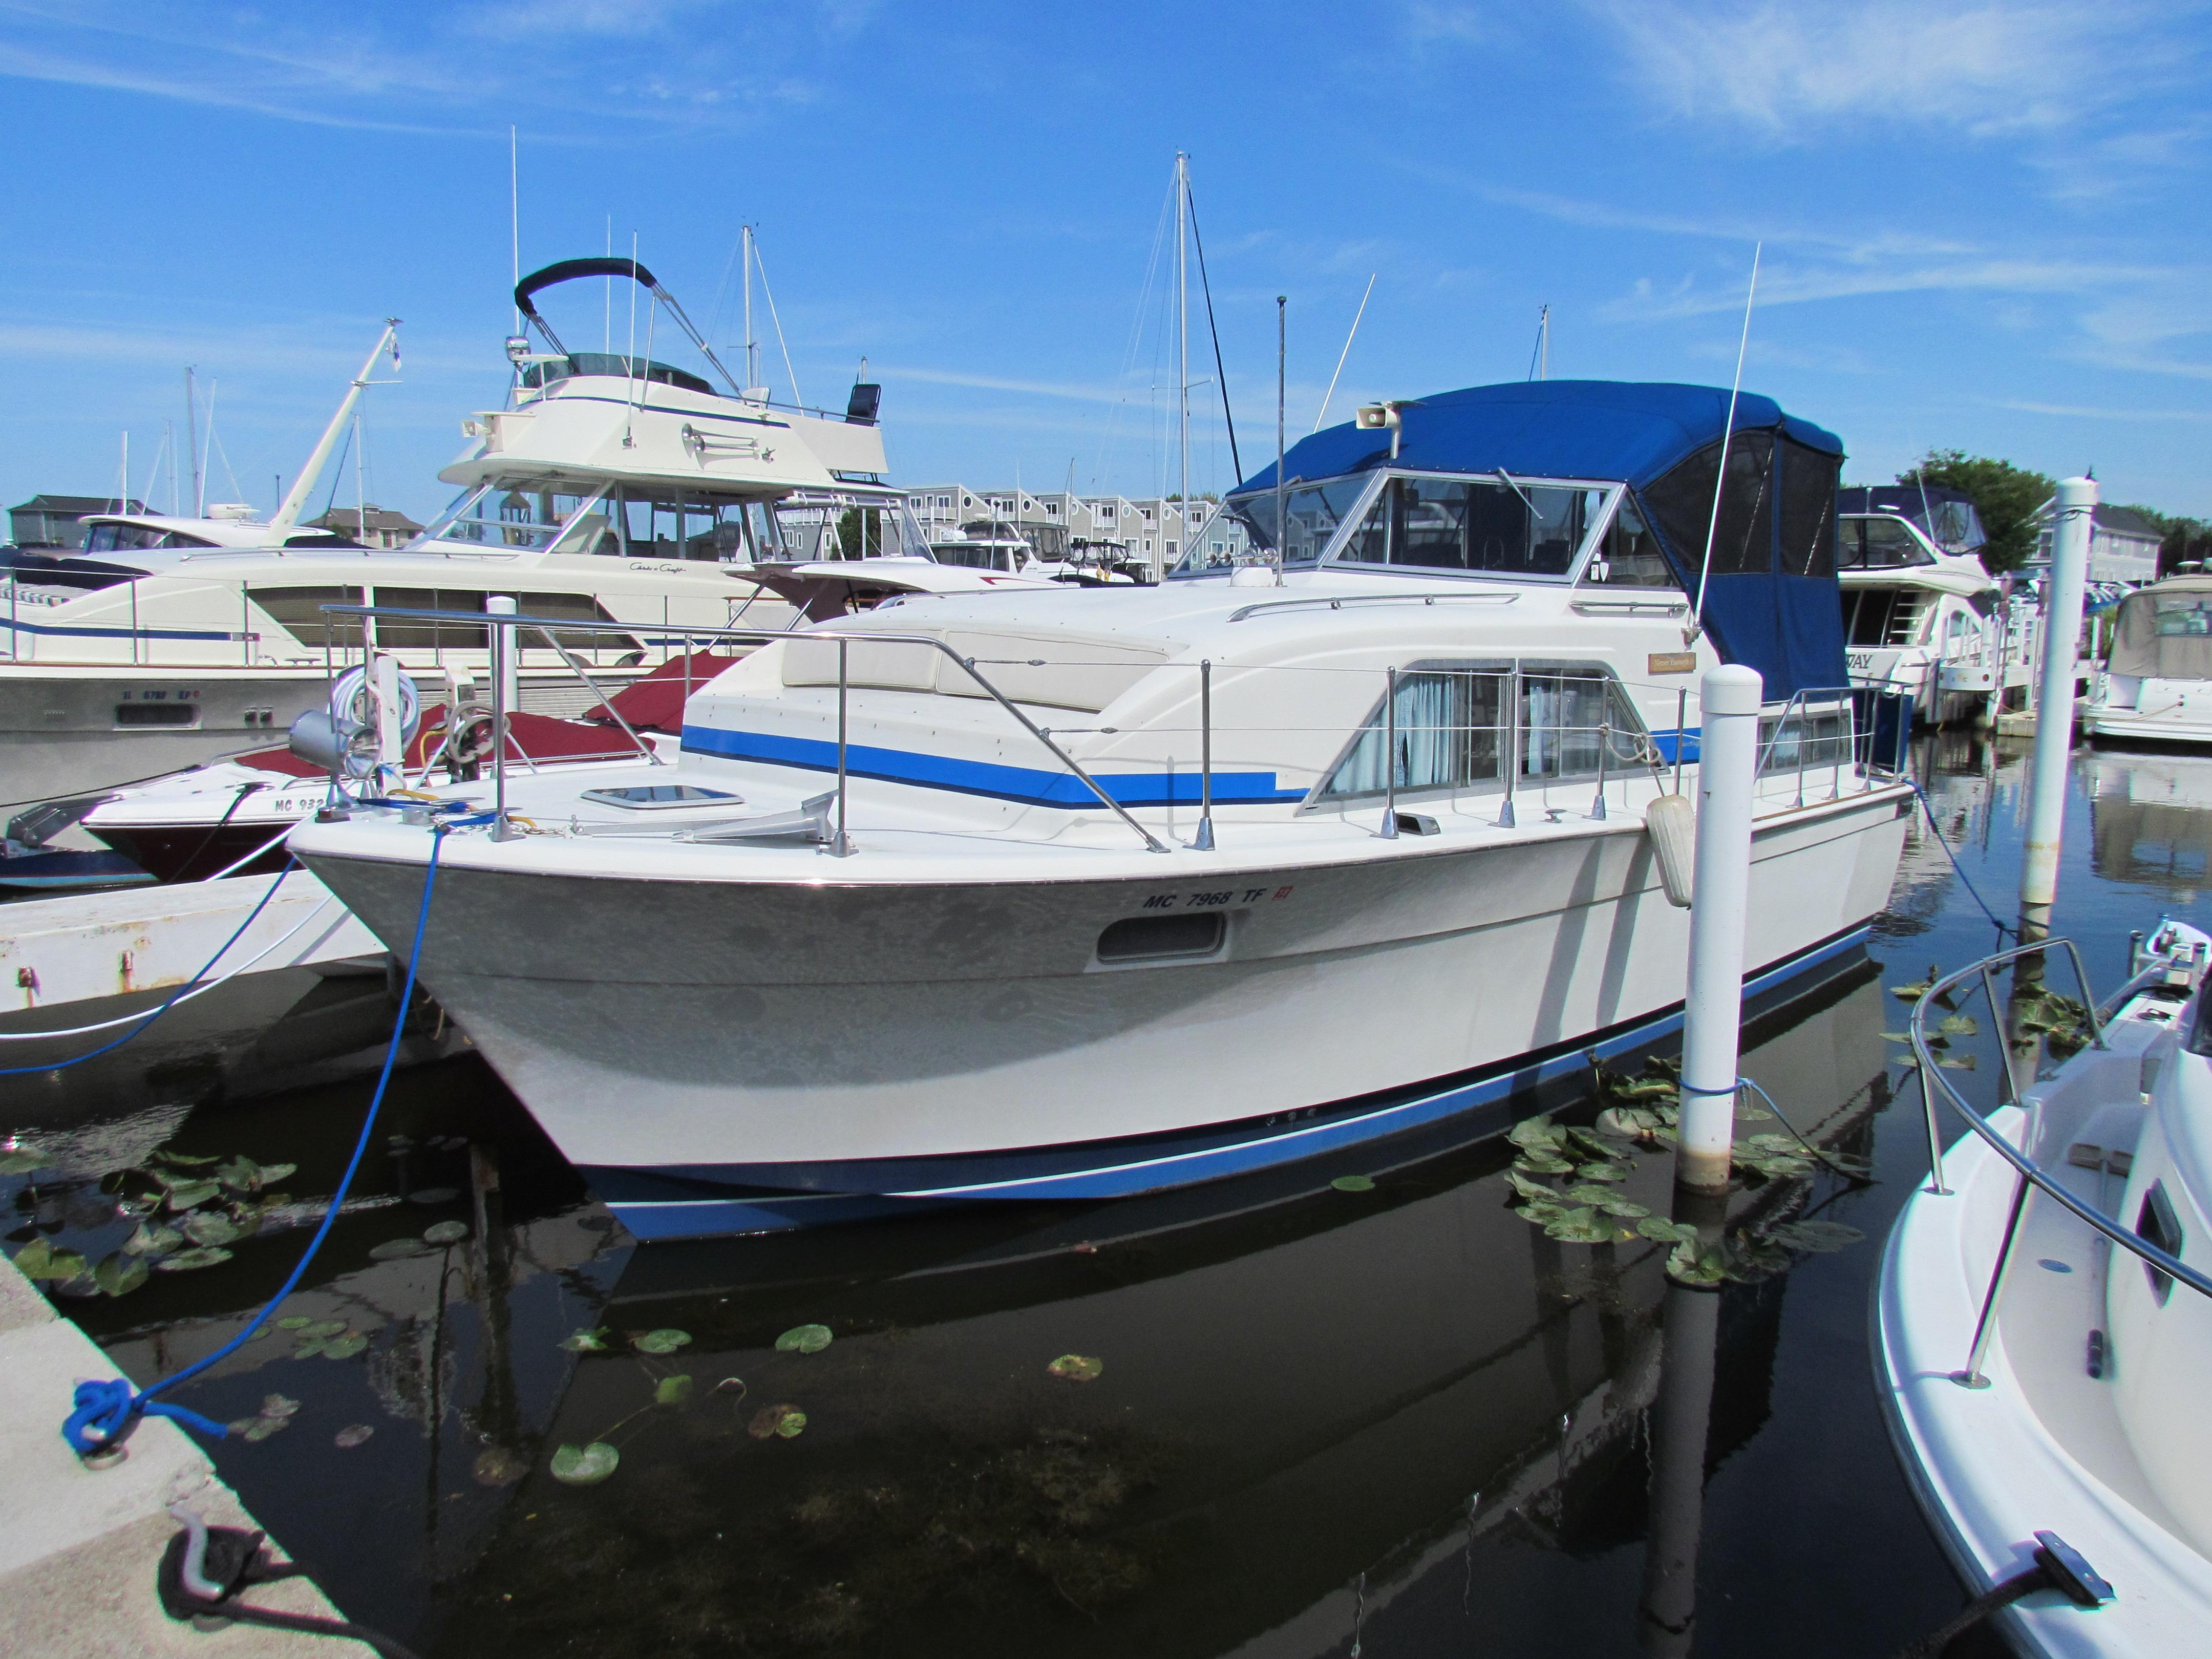 35 Ft Chris Craft Wiring Diagram 32 Images 5383357 20150915114500834 1 Xlargew4320h3240t1442346874000 350 Catalina Boats For Sale Yachtworld